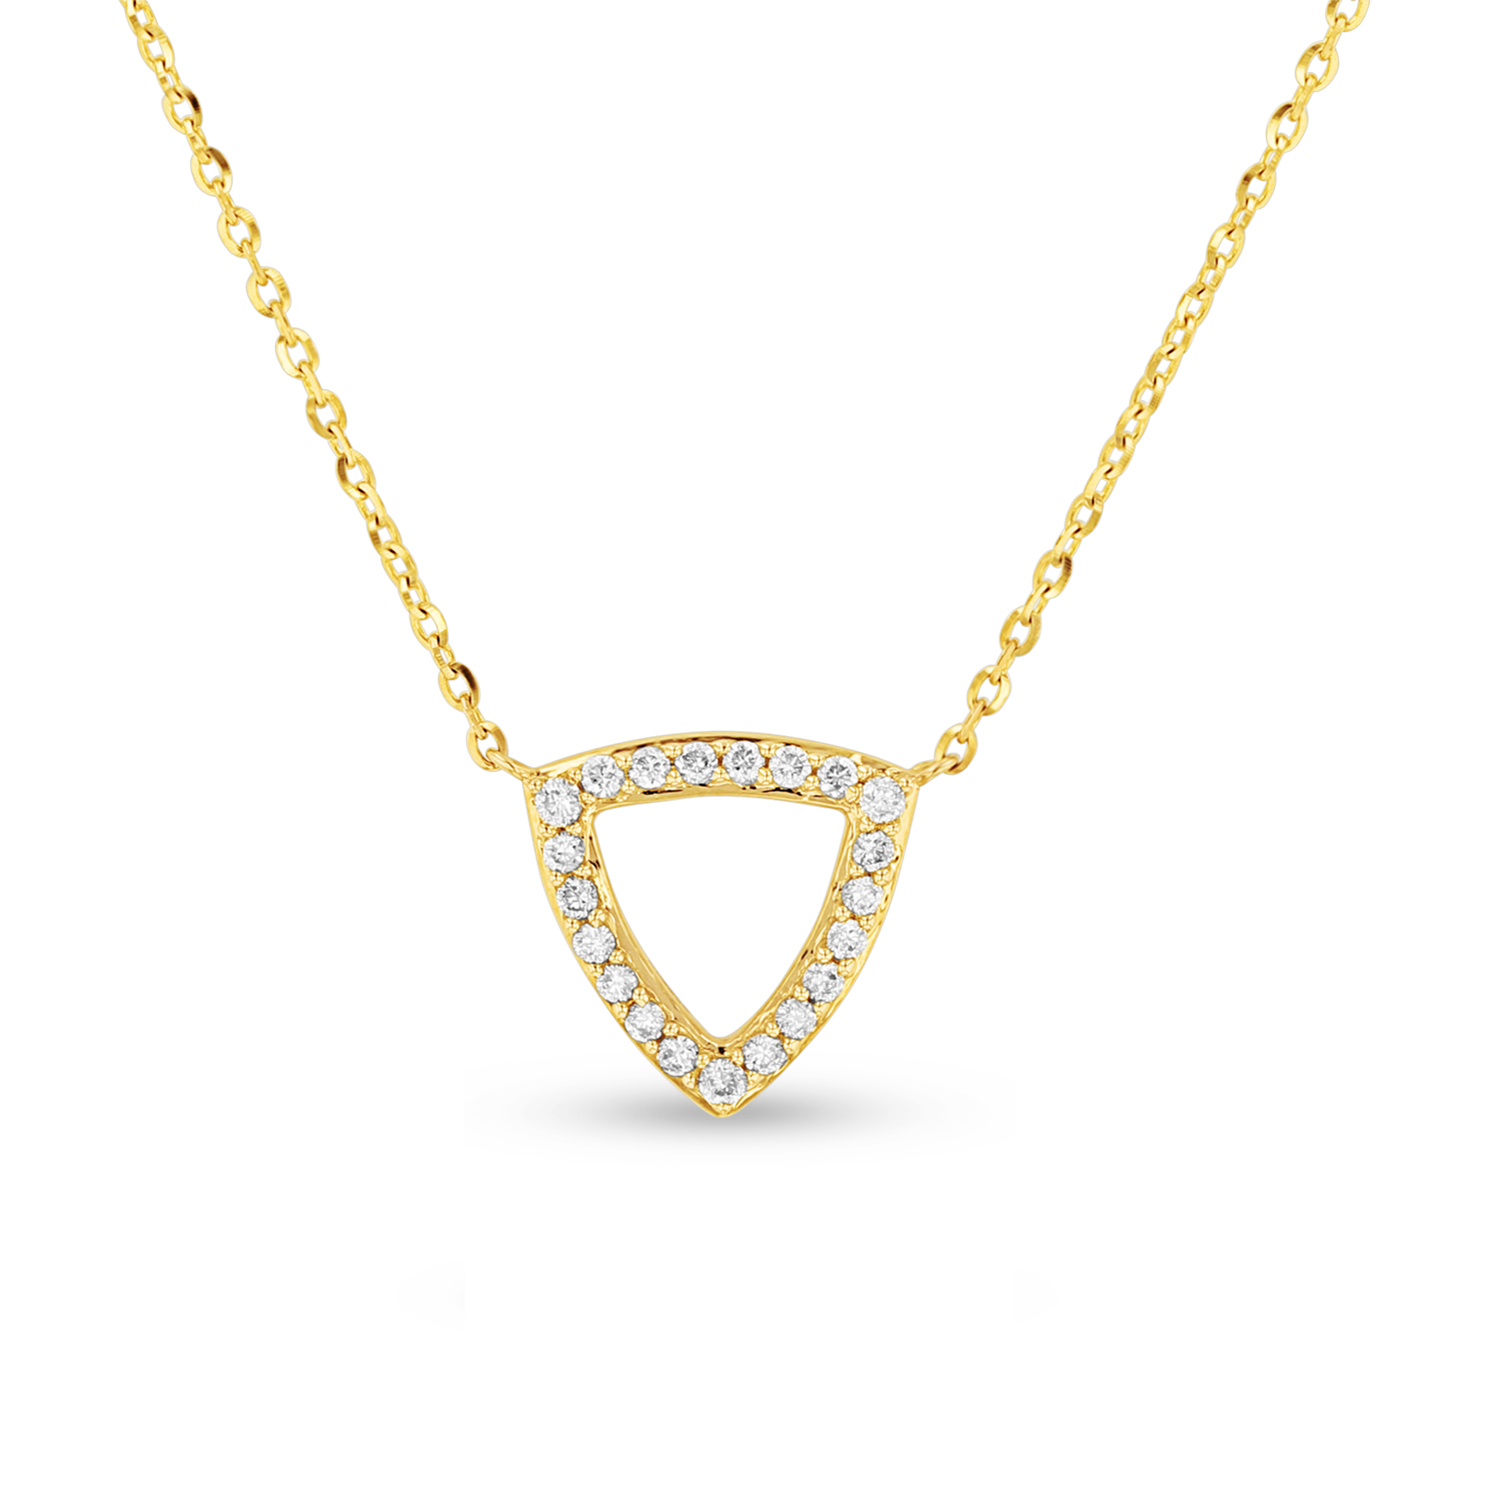 View 0.10ctw Diamond Triangle Pendant in 14k Yellow Gold